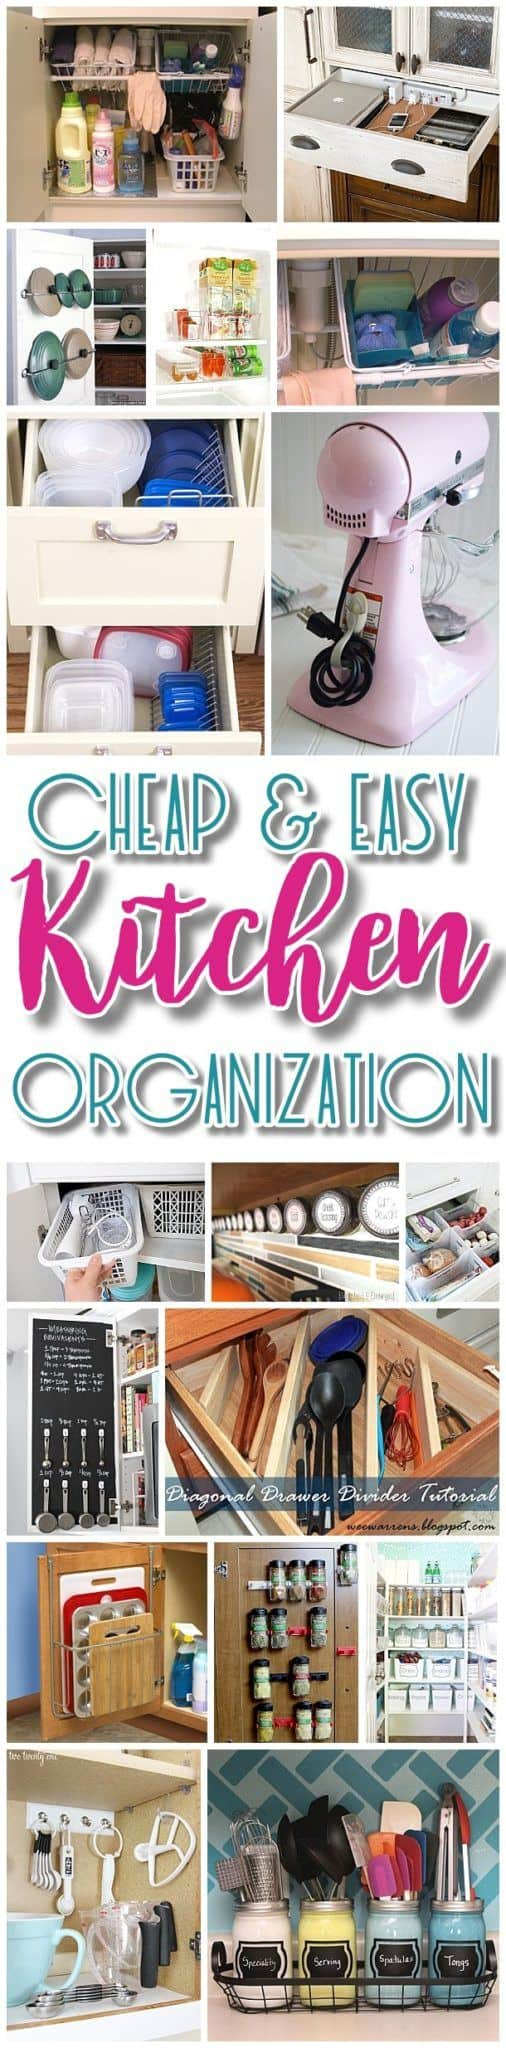 Easy-and-Budget-Friendly-Ways-to-Organize-your-Kitchen-Hacks-Ideas-Space-Saving-tips-and-tricks-for-Organization-in-the-Kitchen-Quickly